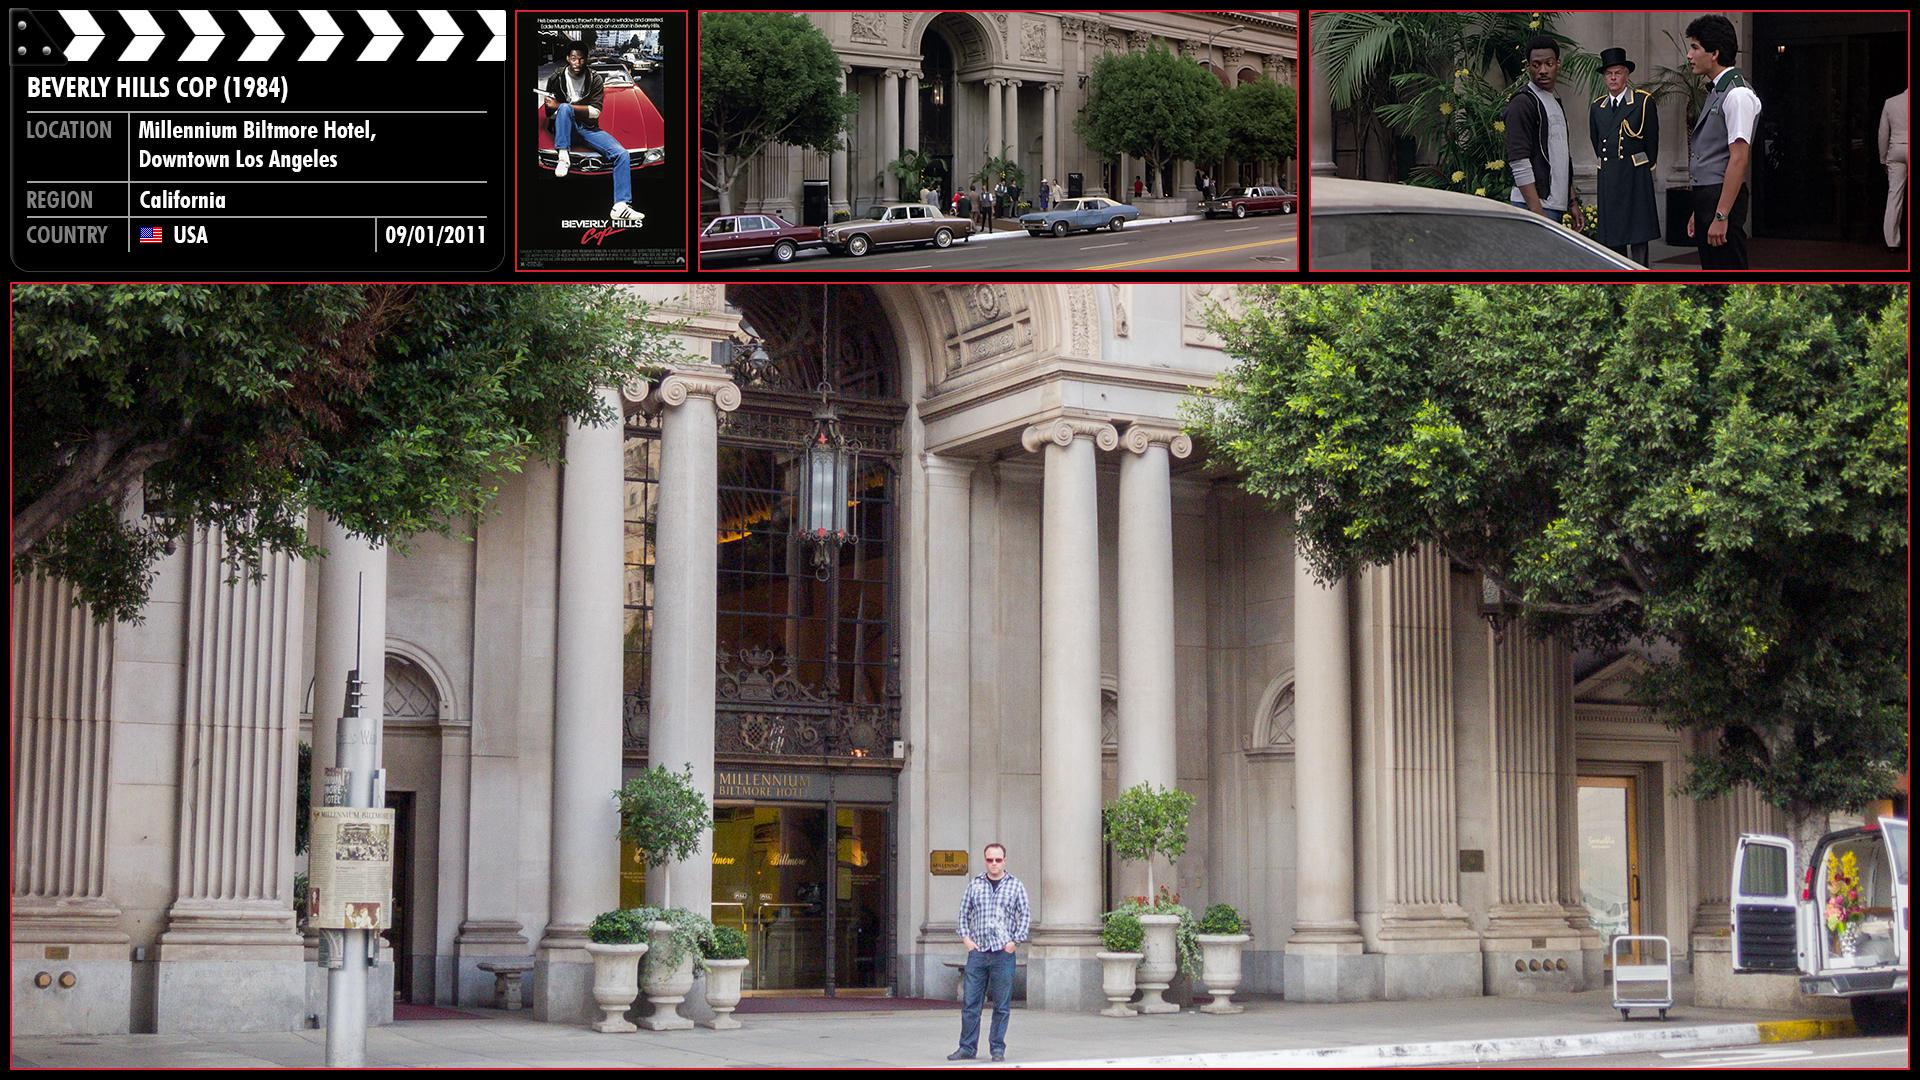 Filming location photo for Beverly Hills Cop (1984) 1 of 3